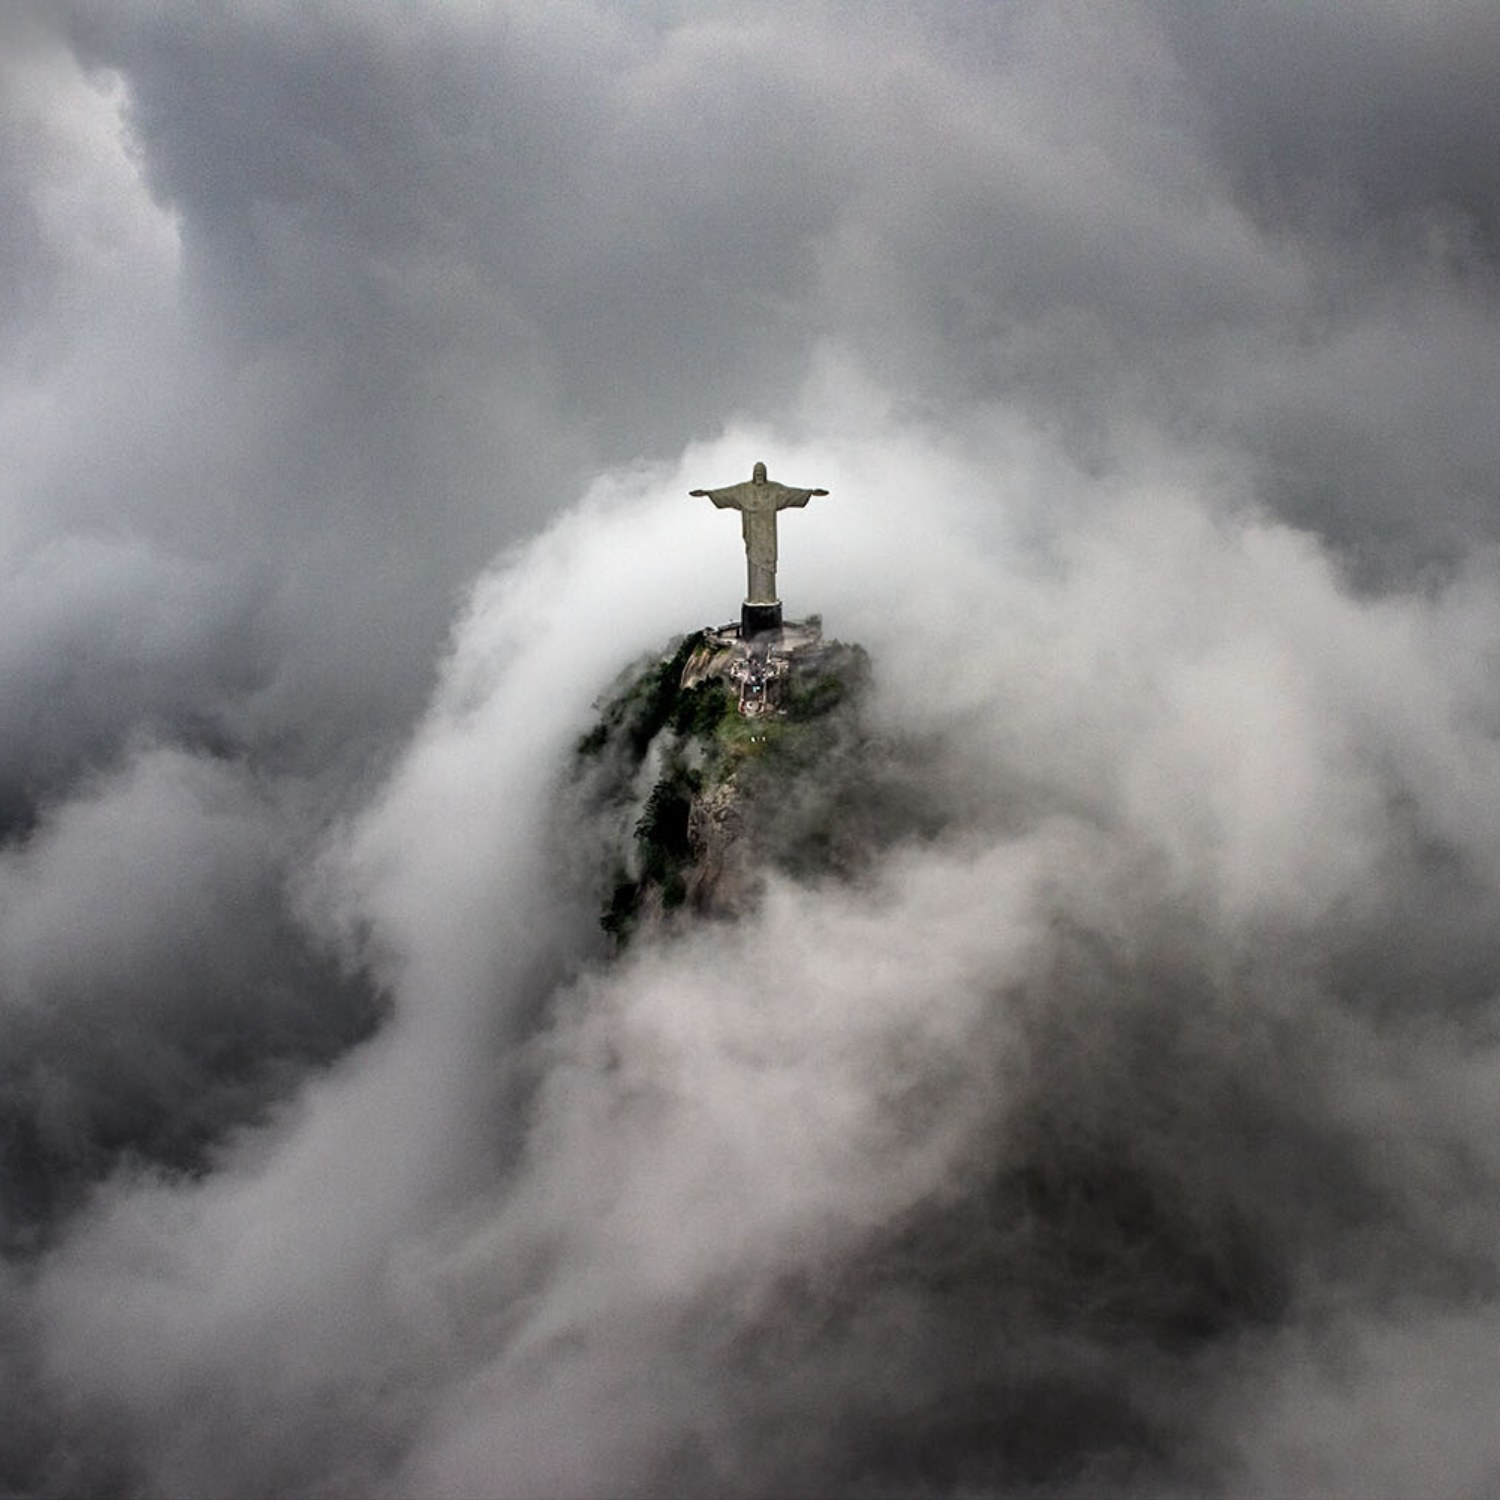 Travel Photograph Christ the Redeemer Rio de Janeiro Brazil photographed by professional travel photographer Ignacio Palacios